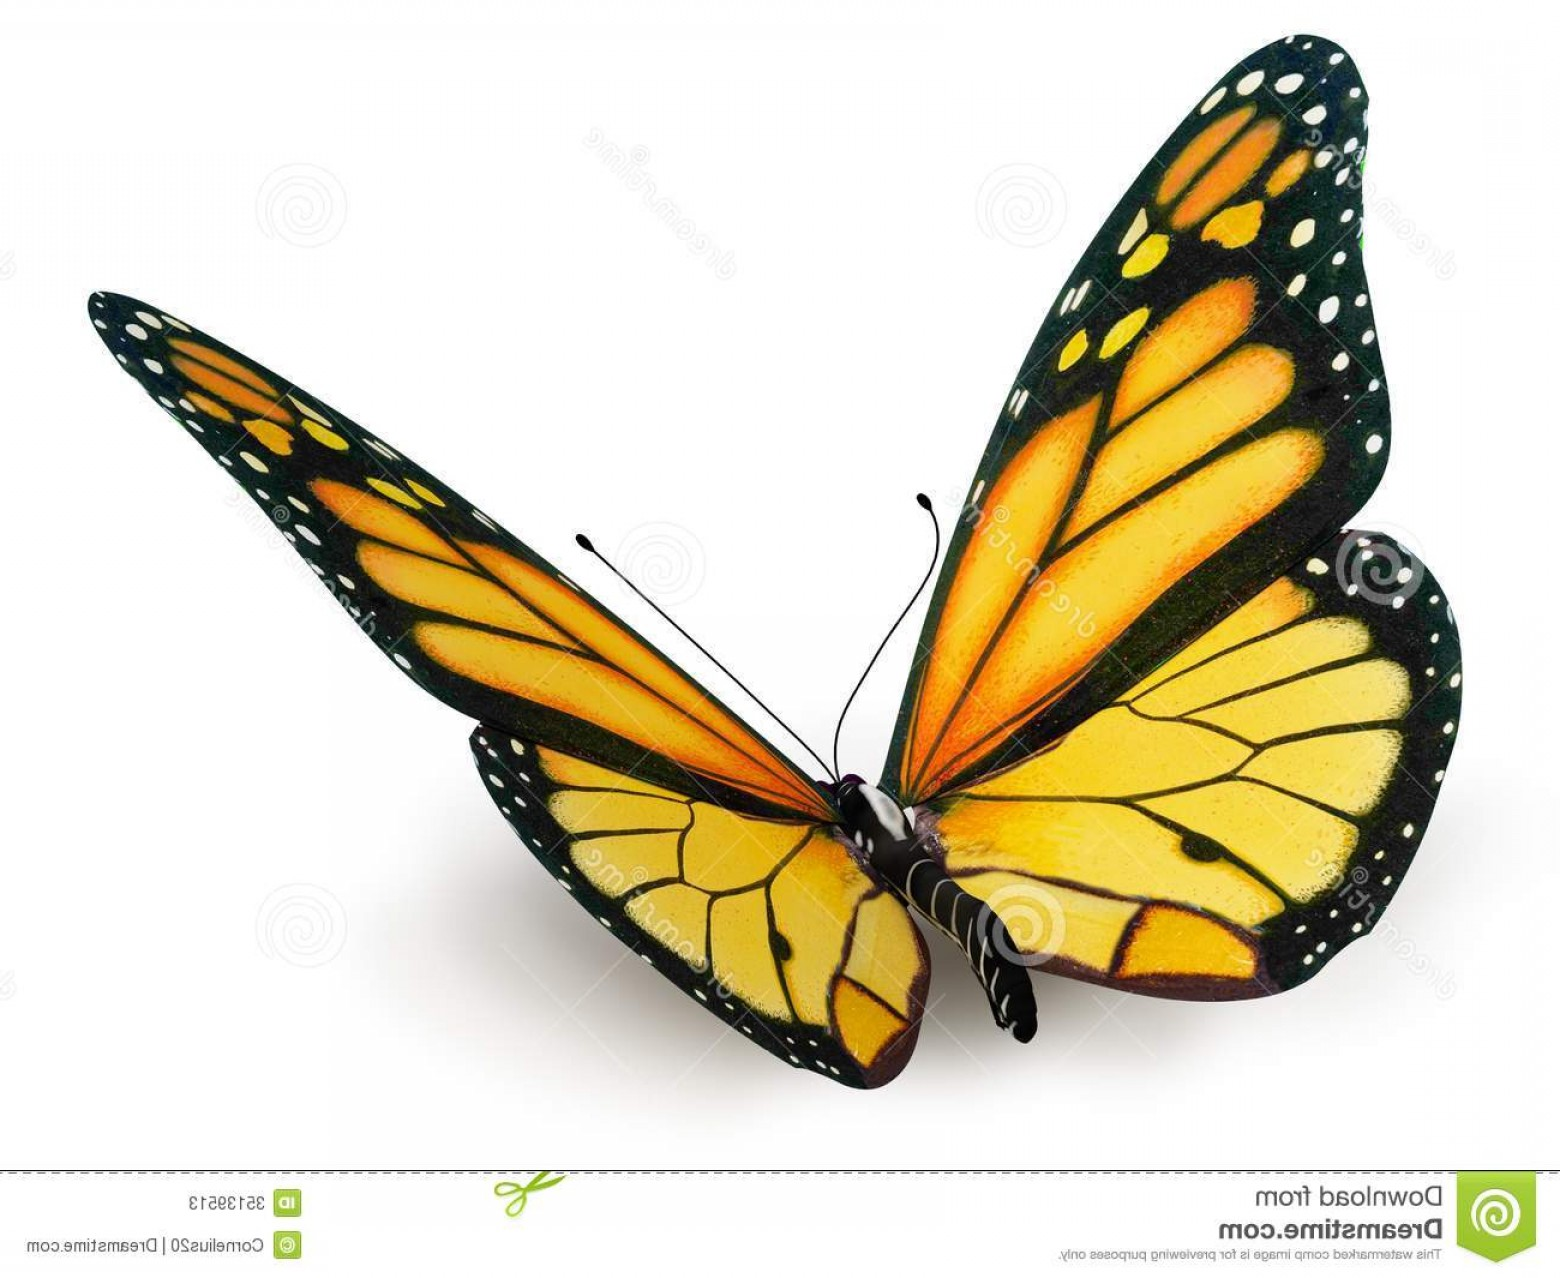 Real Butterfly Vector: Stock Photos Butterfly Yellow White Background Isolated Image